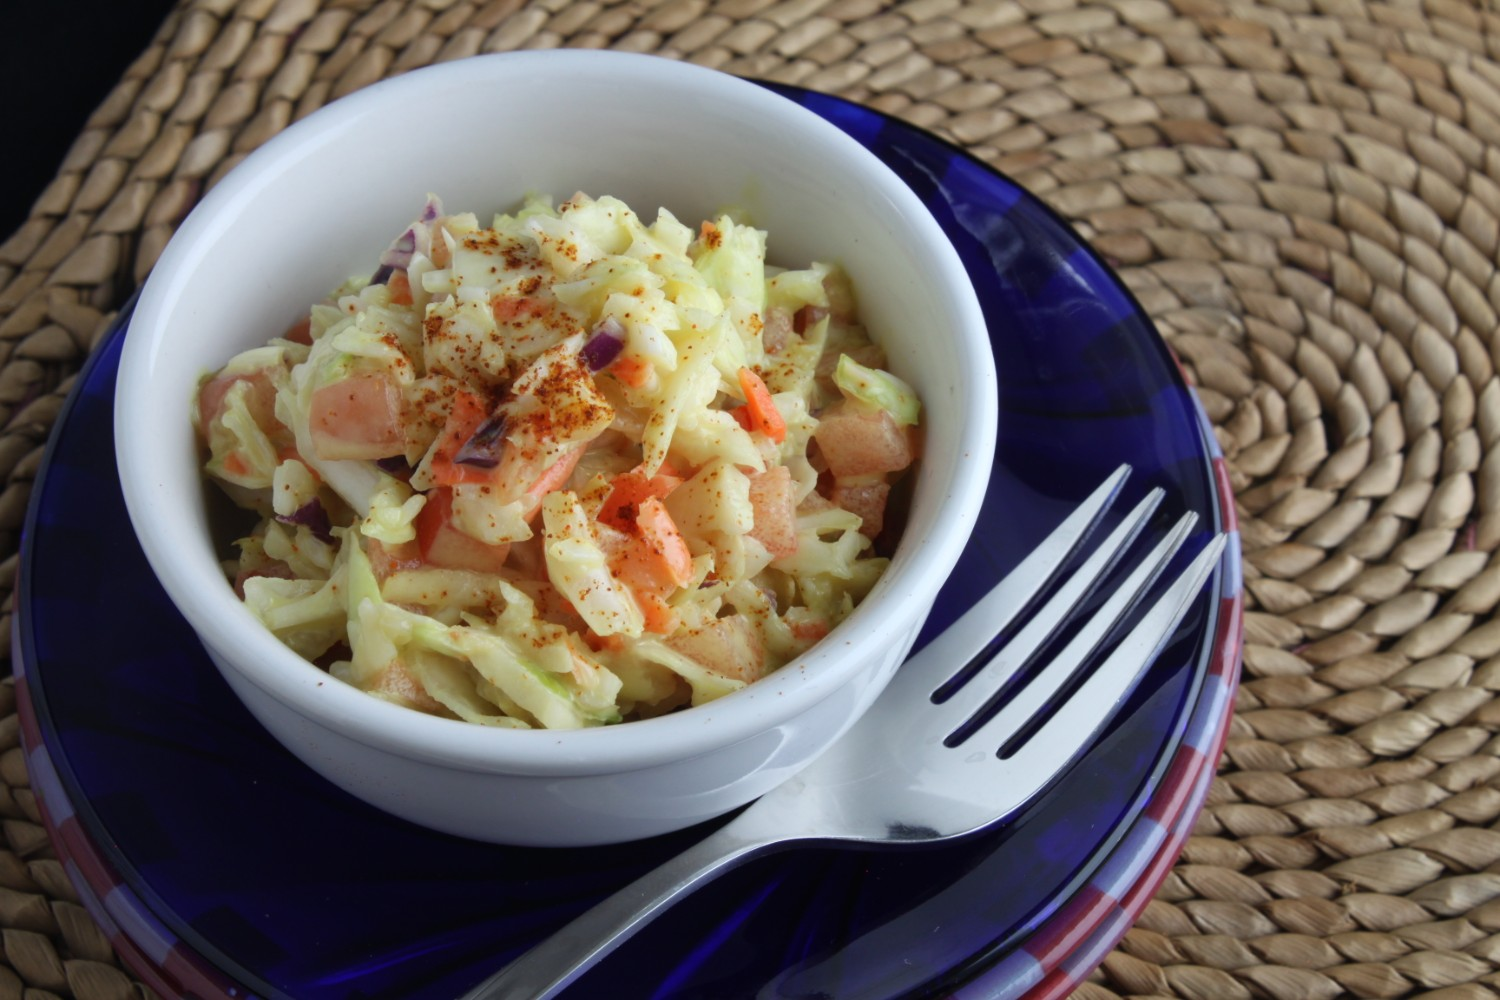 TaterSweet Coleslaw in White Bowl on Blue Plate